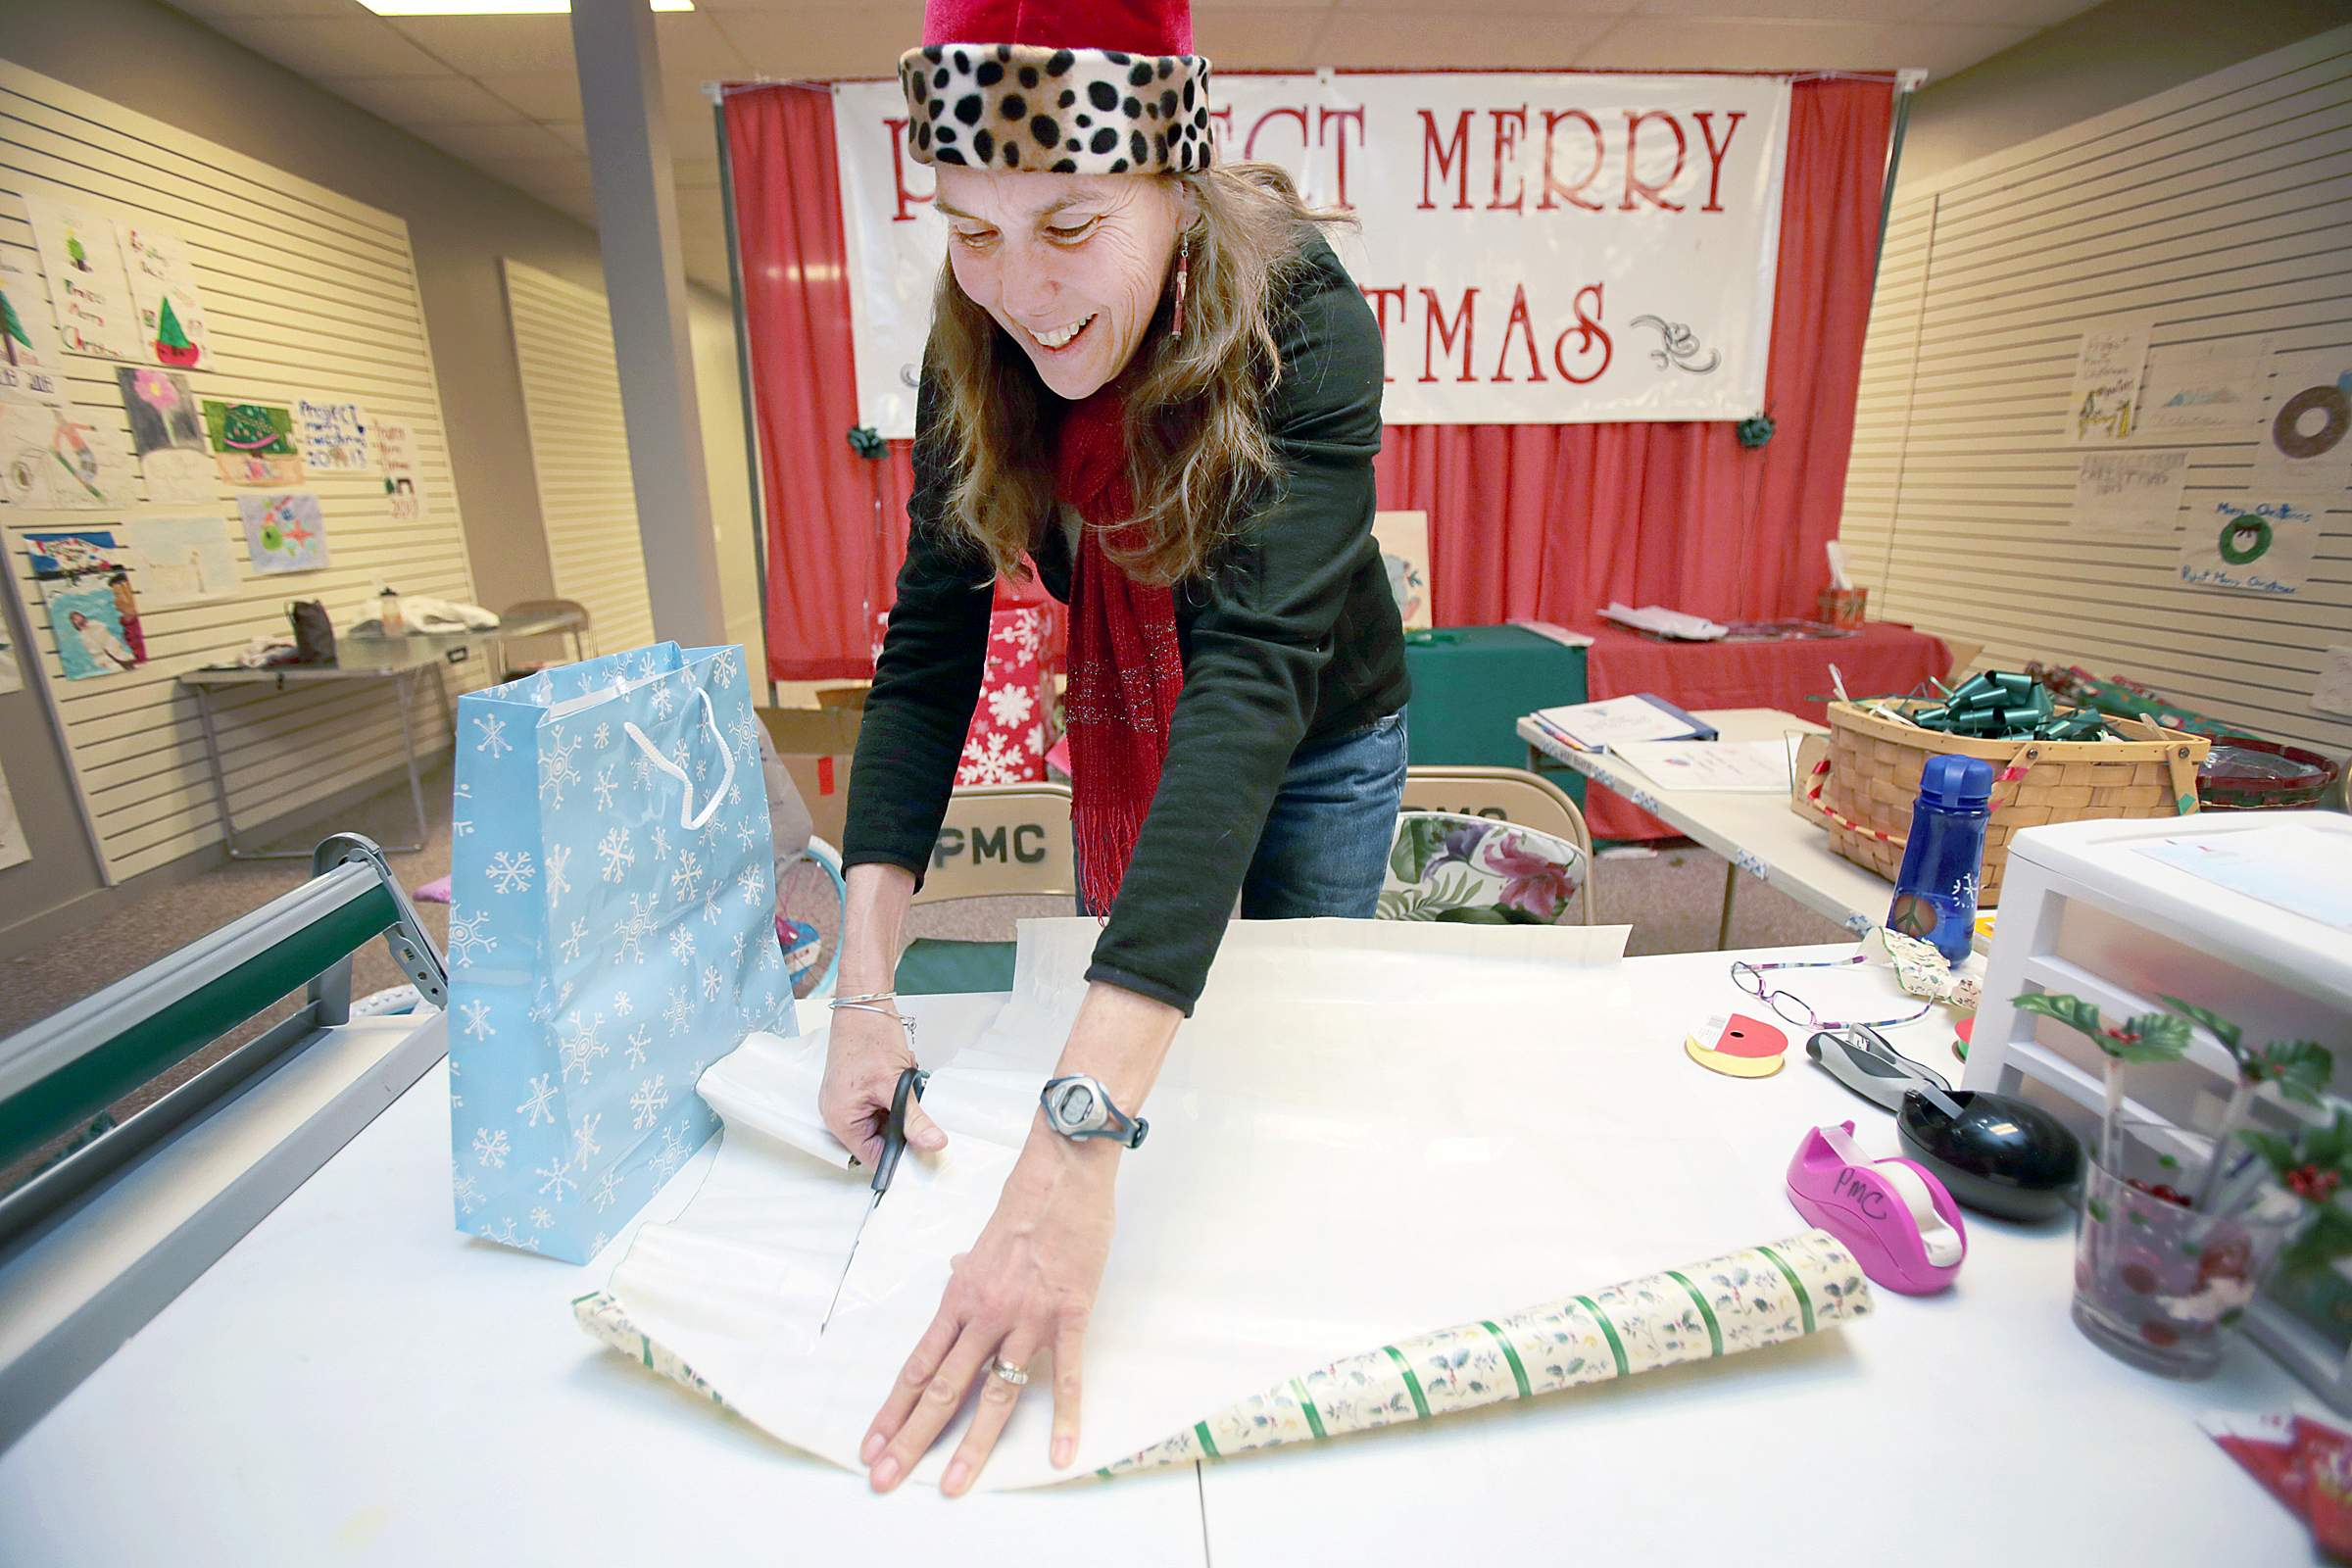 After three decades, Project Merry Christmas calls it quits